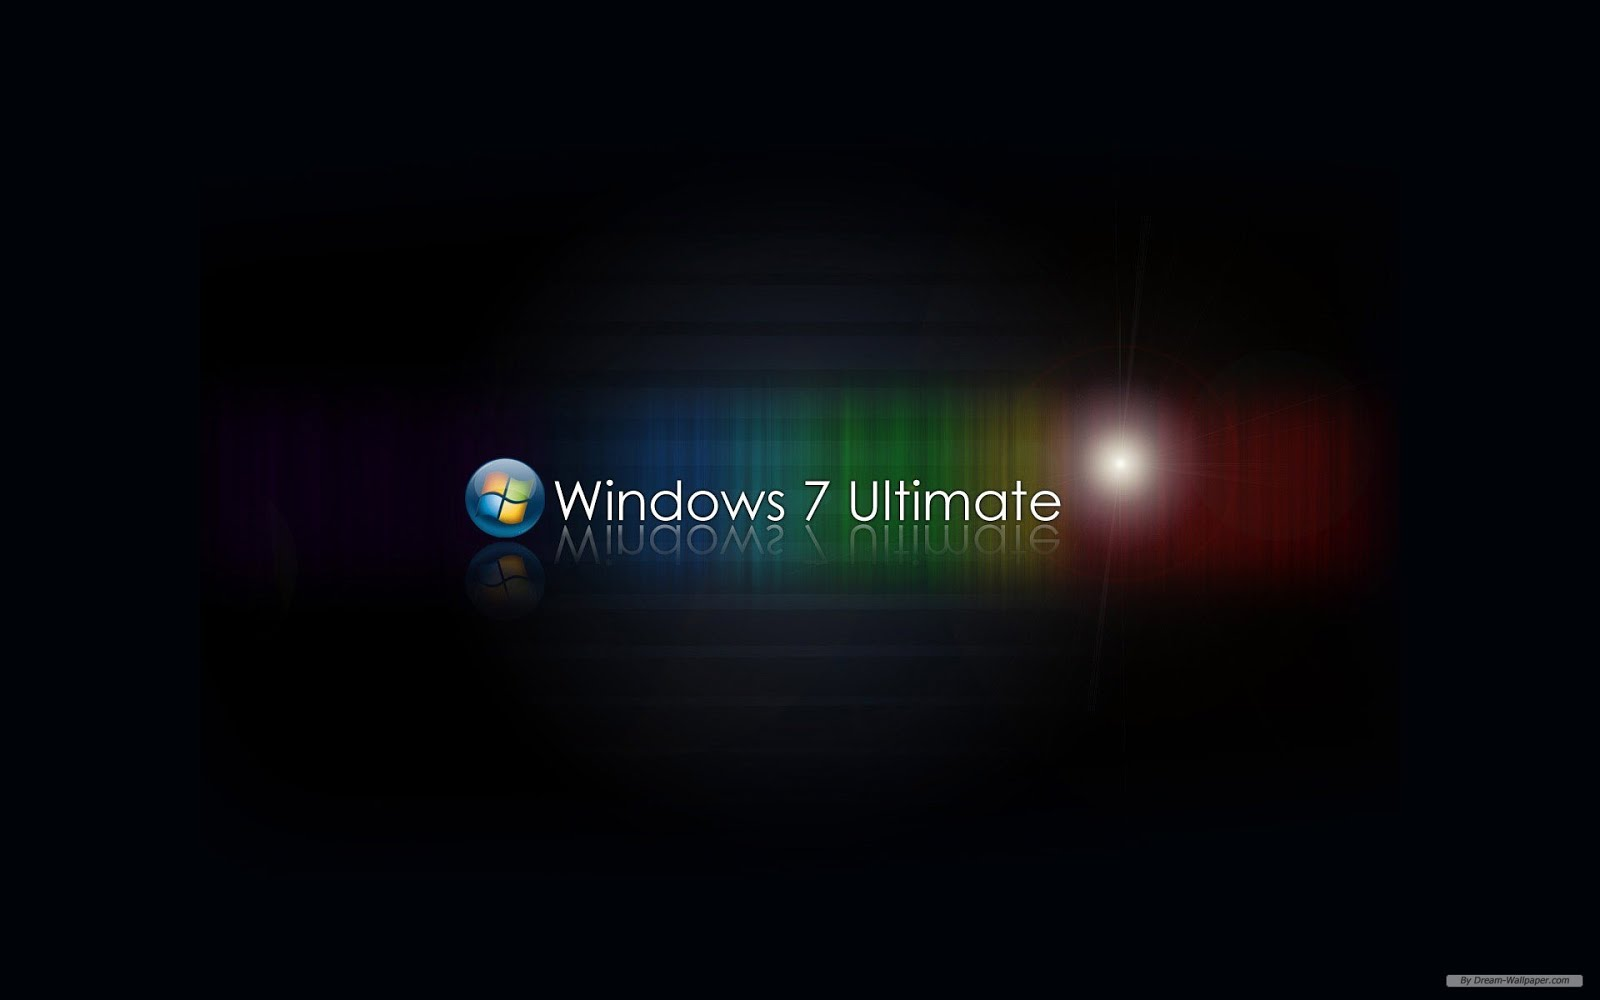 windows 7 ultimate 64 bit bootable iso free download